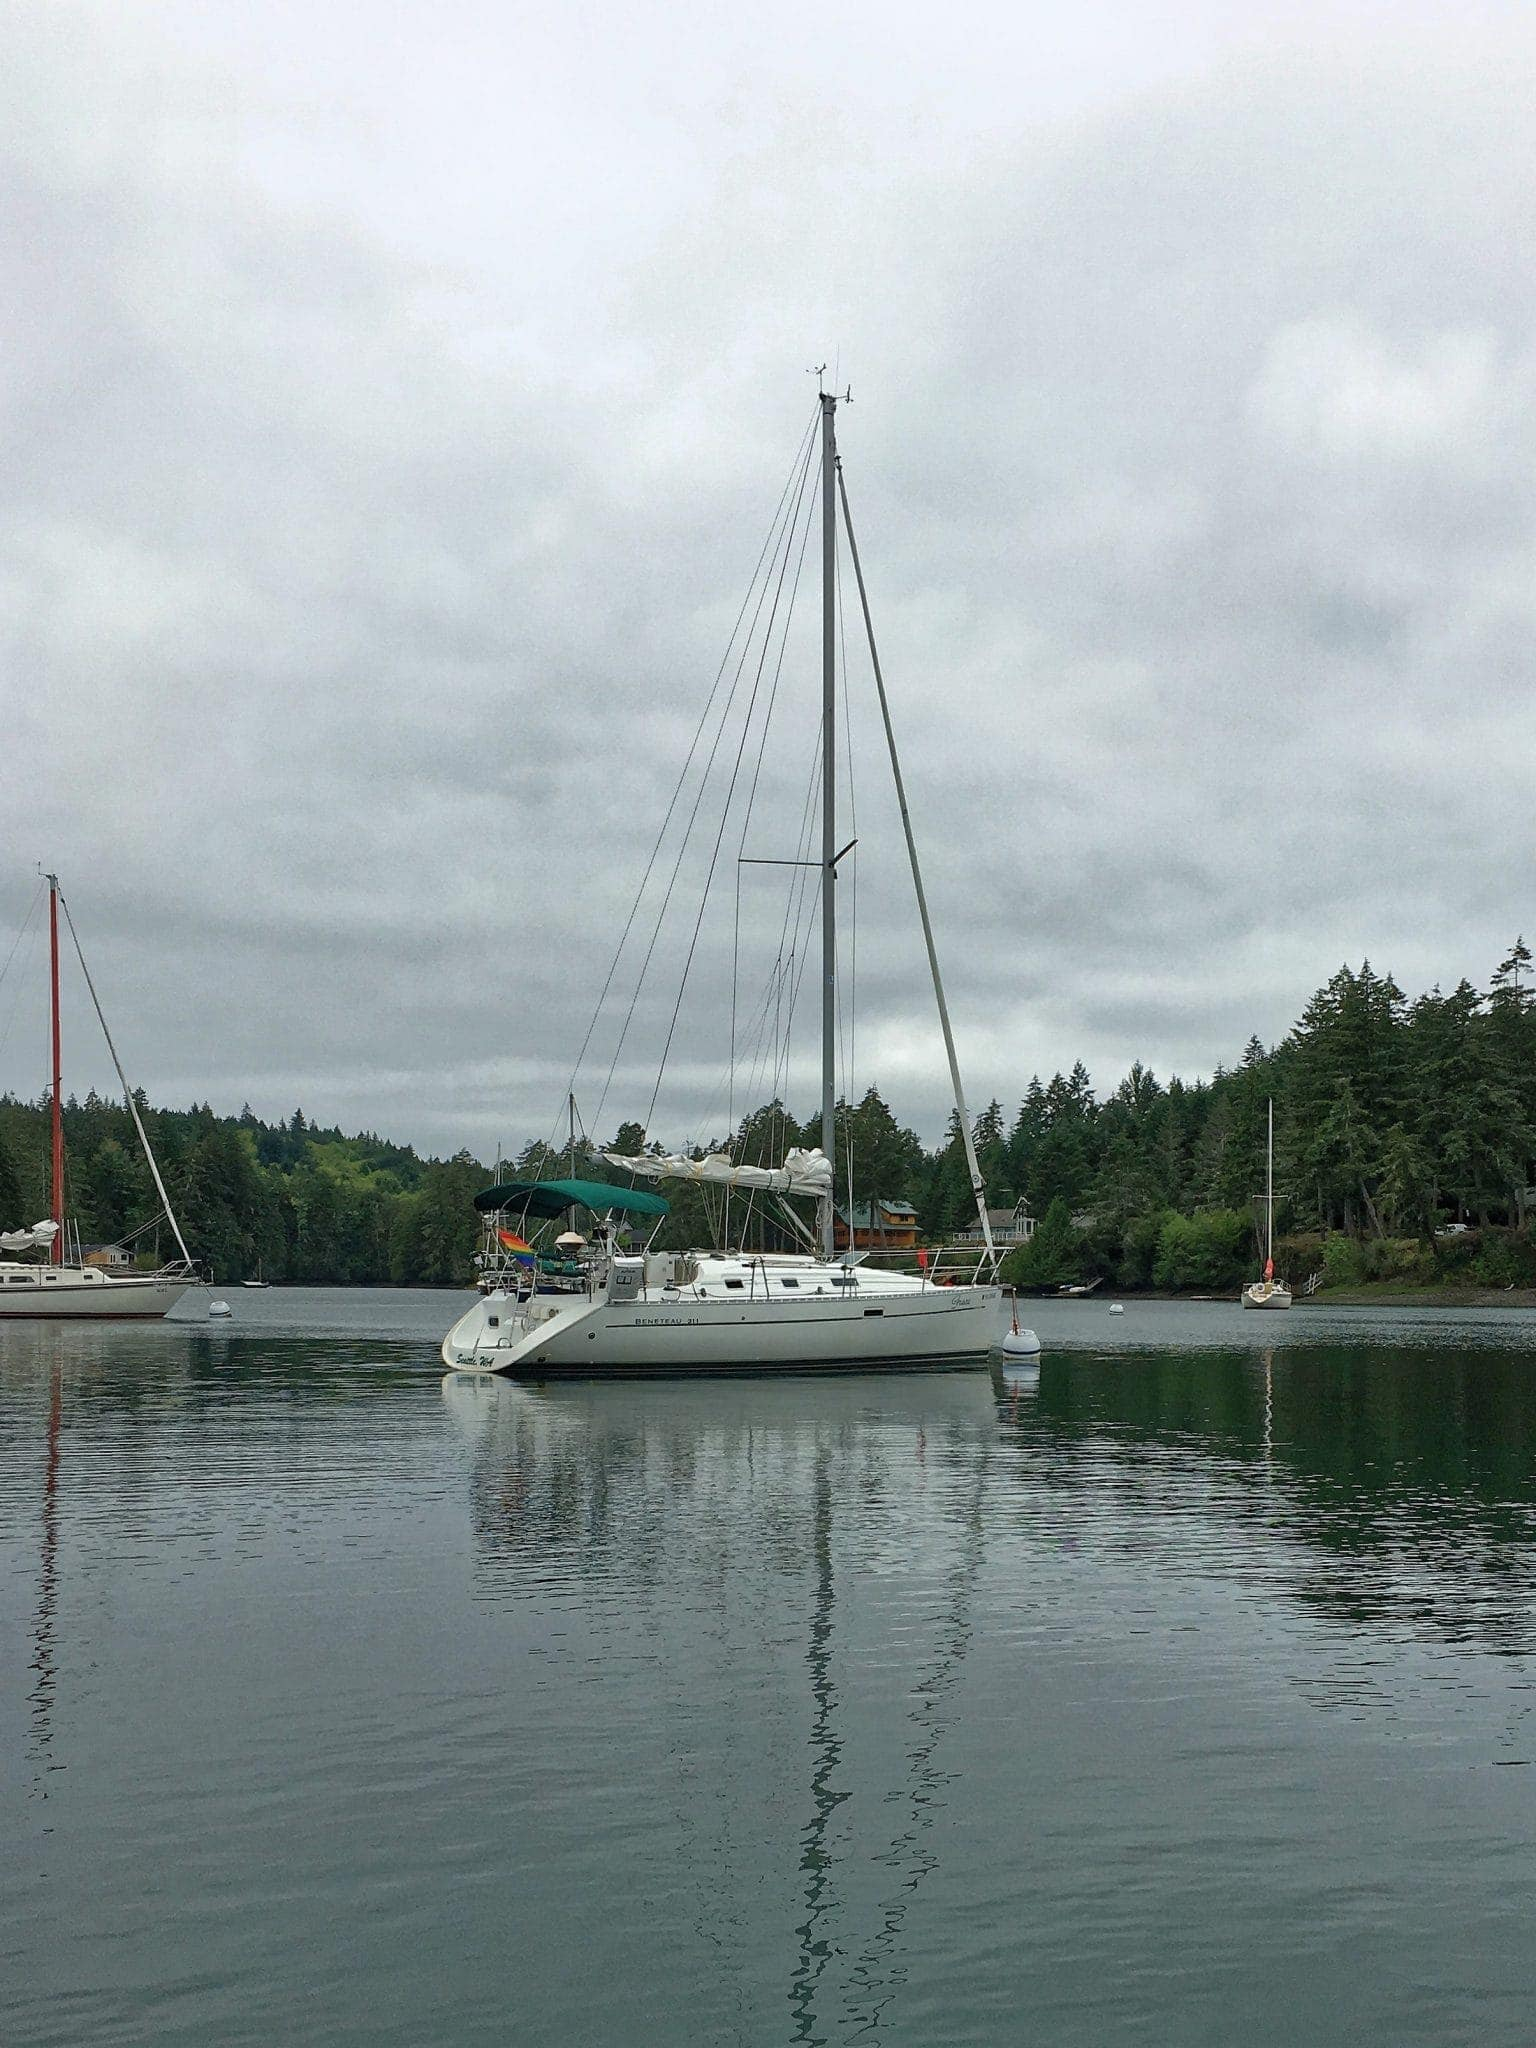 Grace on mooring at Jerrell Cove